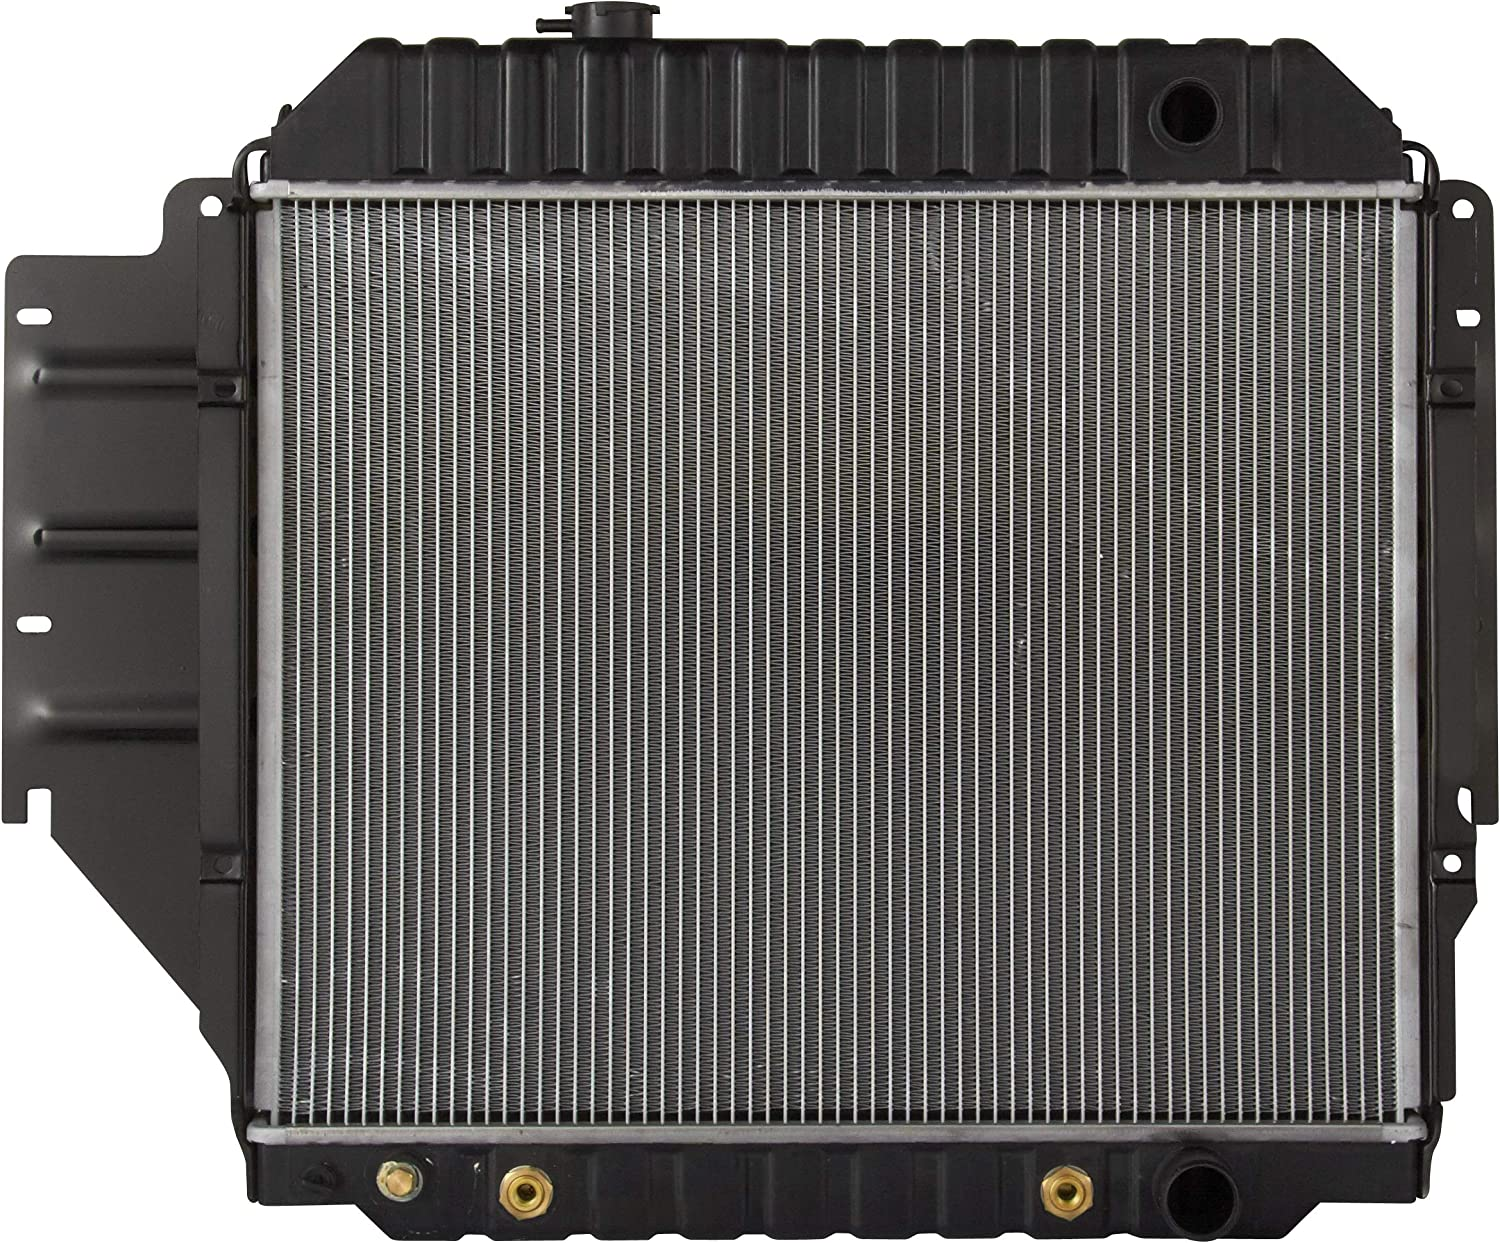 Spectra Premium CU1455 Complete Radiator for Ford